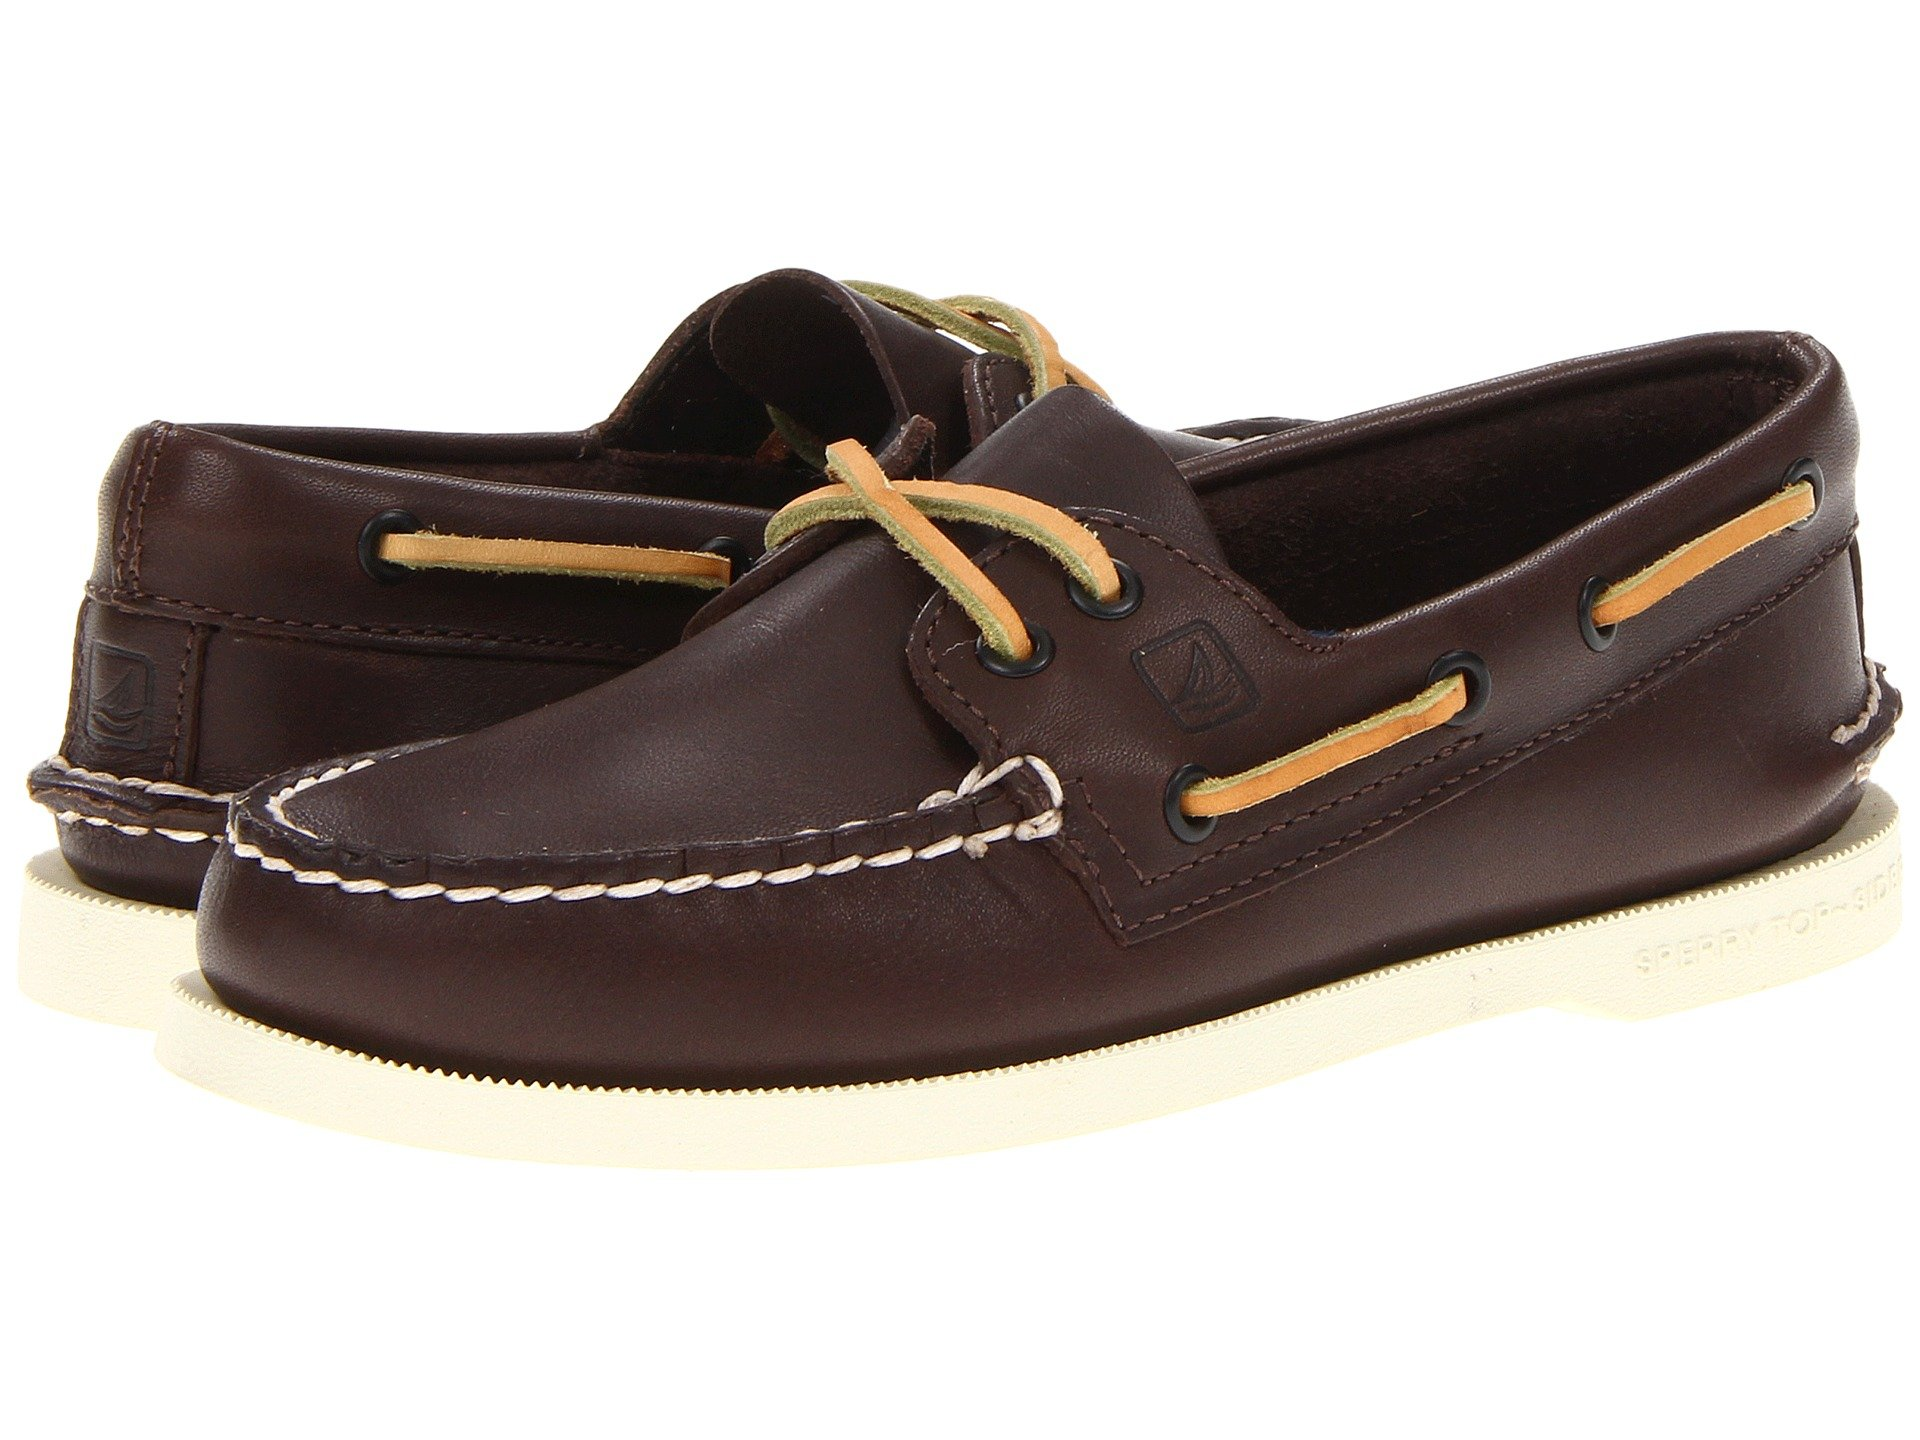 Product Details. Tackle this season with the Authentic Original Boat Shoe from Sperry Top-Sider! The Authentic Original Boat Shoe sports a traditional design with stain and water-resistant uppers crafted with premium leather for durability and fasttoronto9rr.cf: